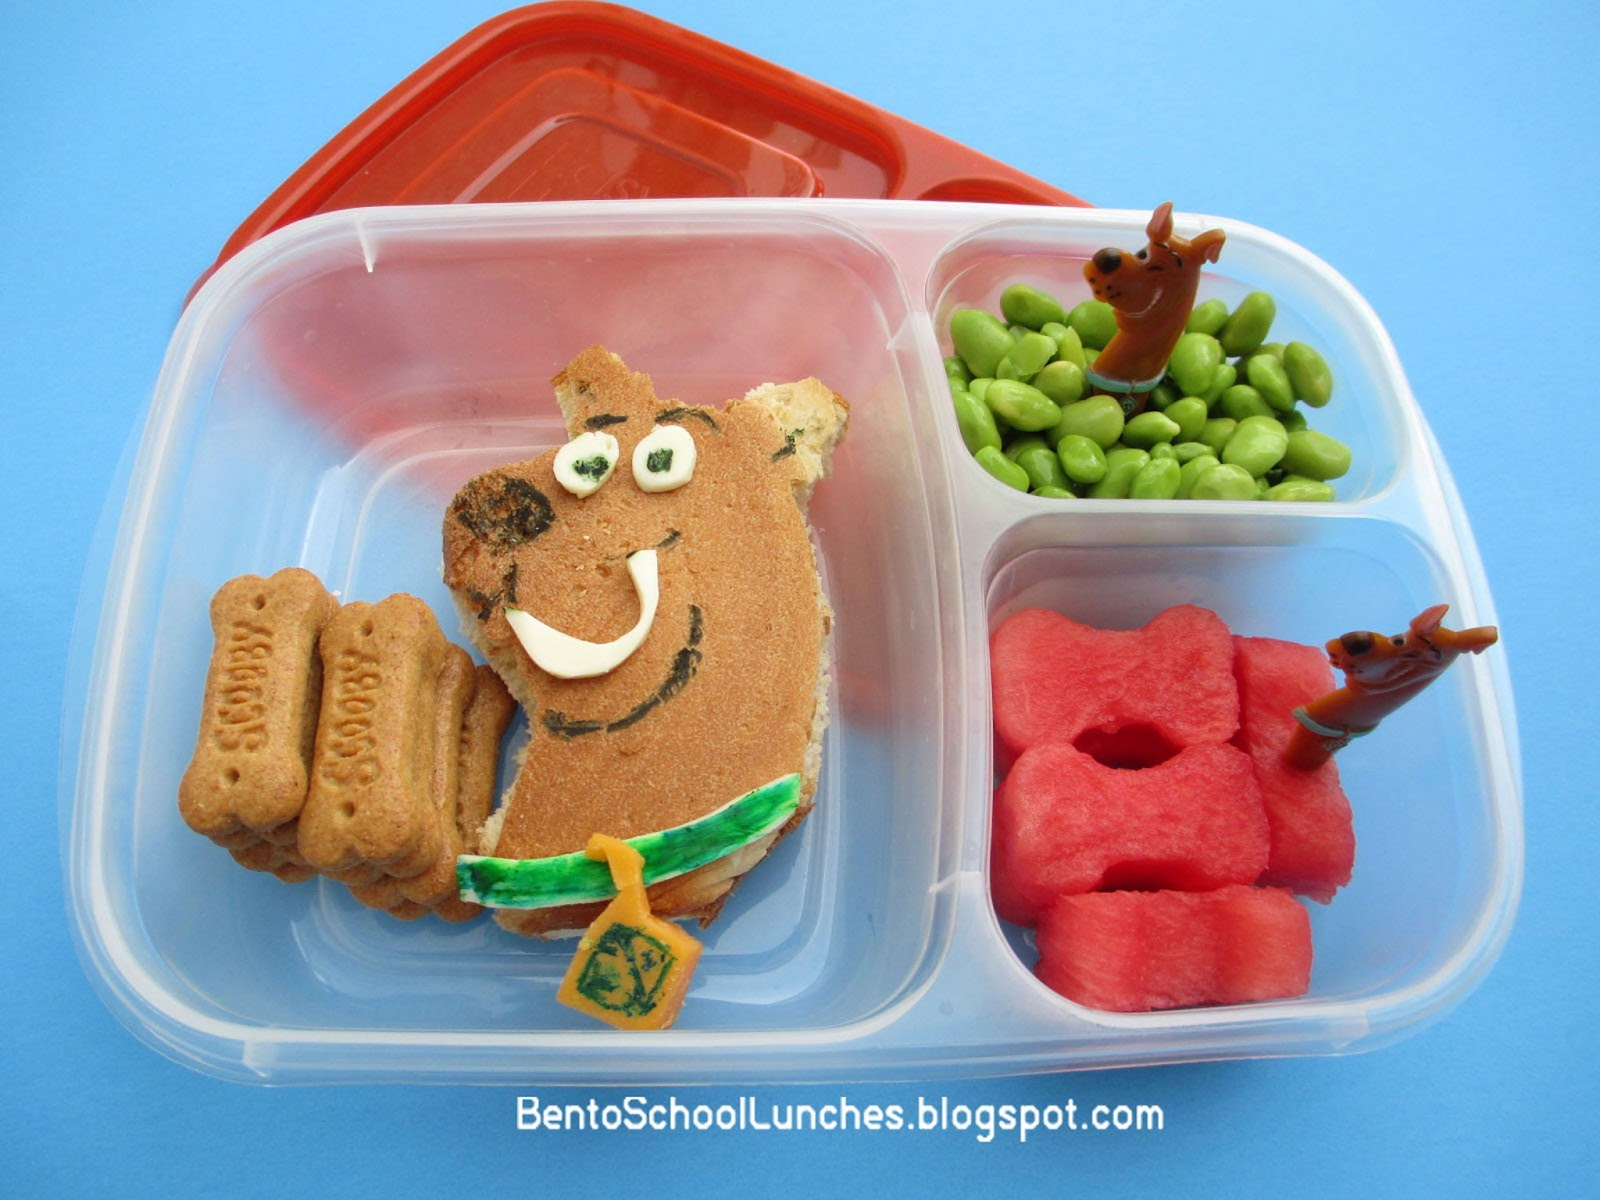 bento school lunches review easy lunchbox and scooby doo bento lunch. Black Bedroom Furniture Sets. Home Design Ideas